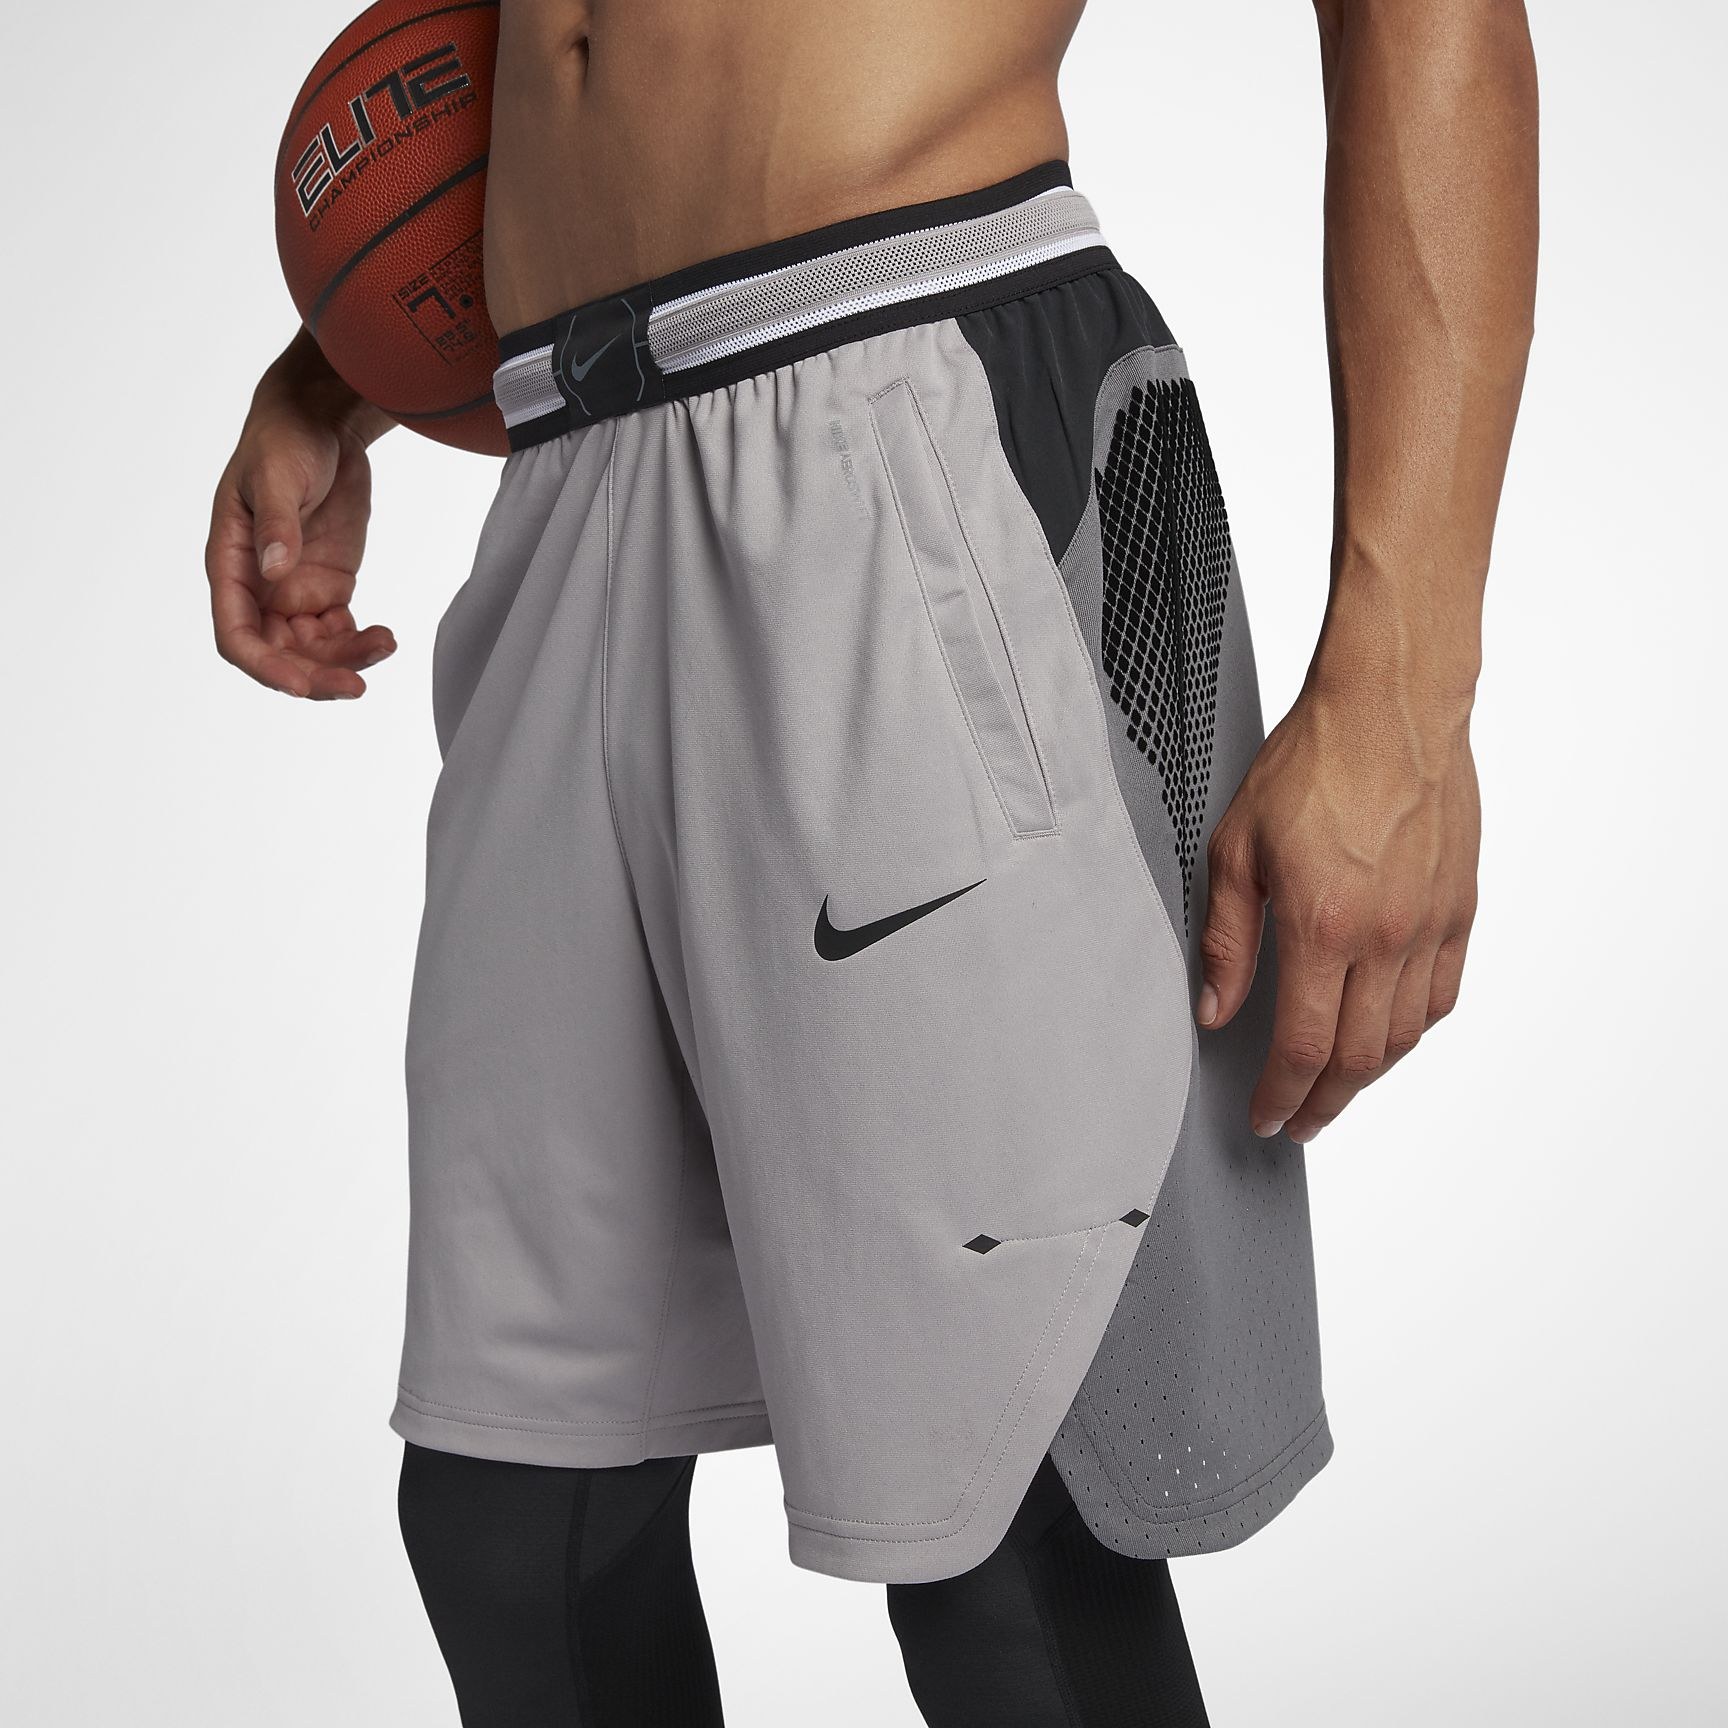 d0c107c21414 ... Shorts Mens  Nike Aeroswift Basketball Shorts ...